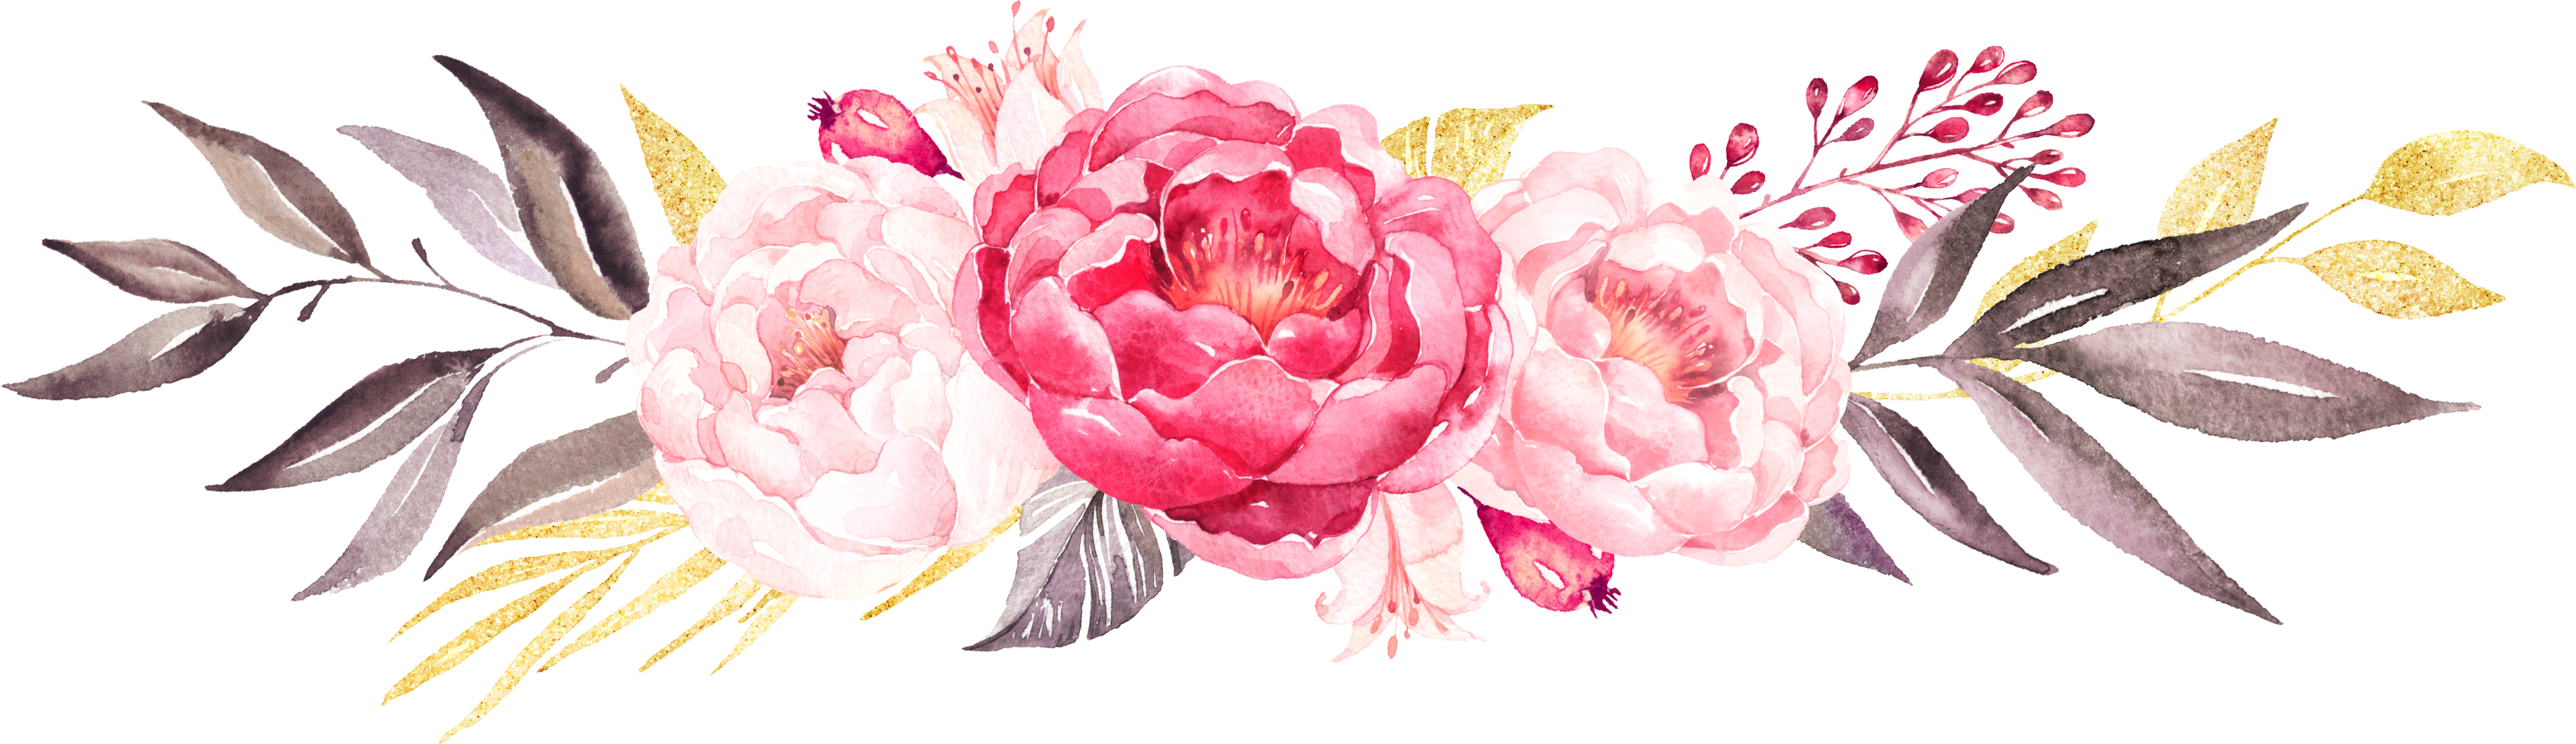 Peony crown clipart jpg royalty free library watercolour | watercolour花组 | Pinterest | Watercolor jpg royalty free library